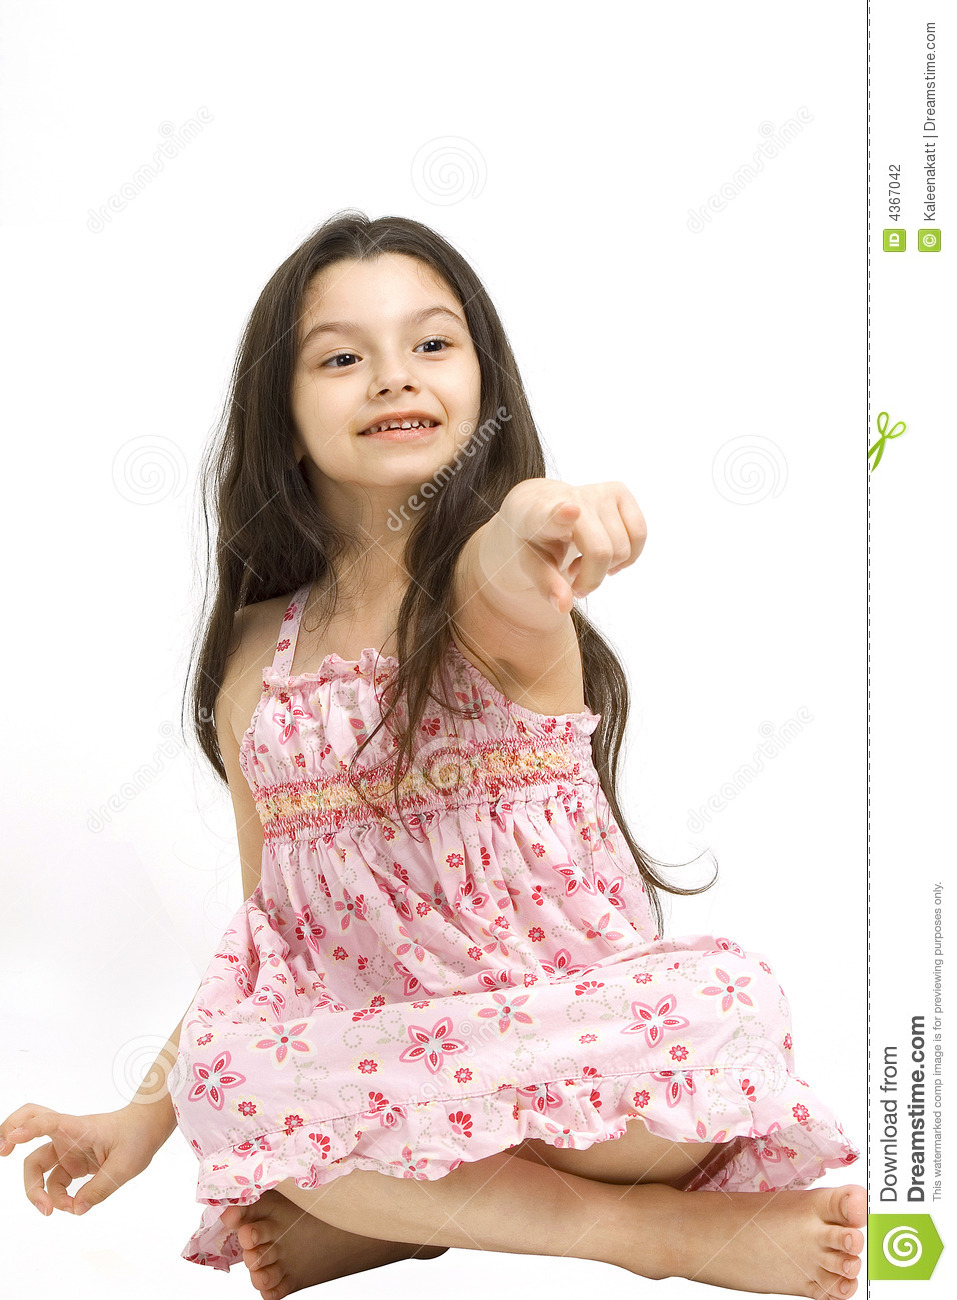 youngster girls Cute young girl pointing